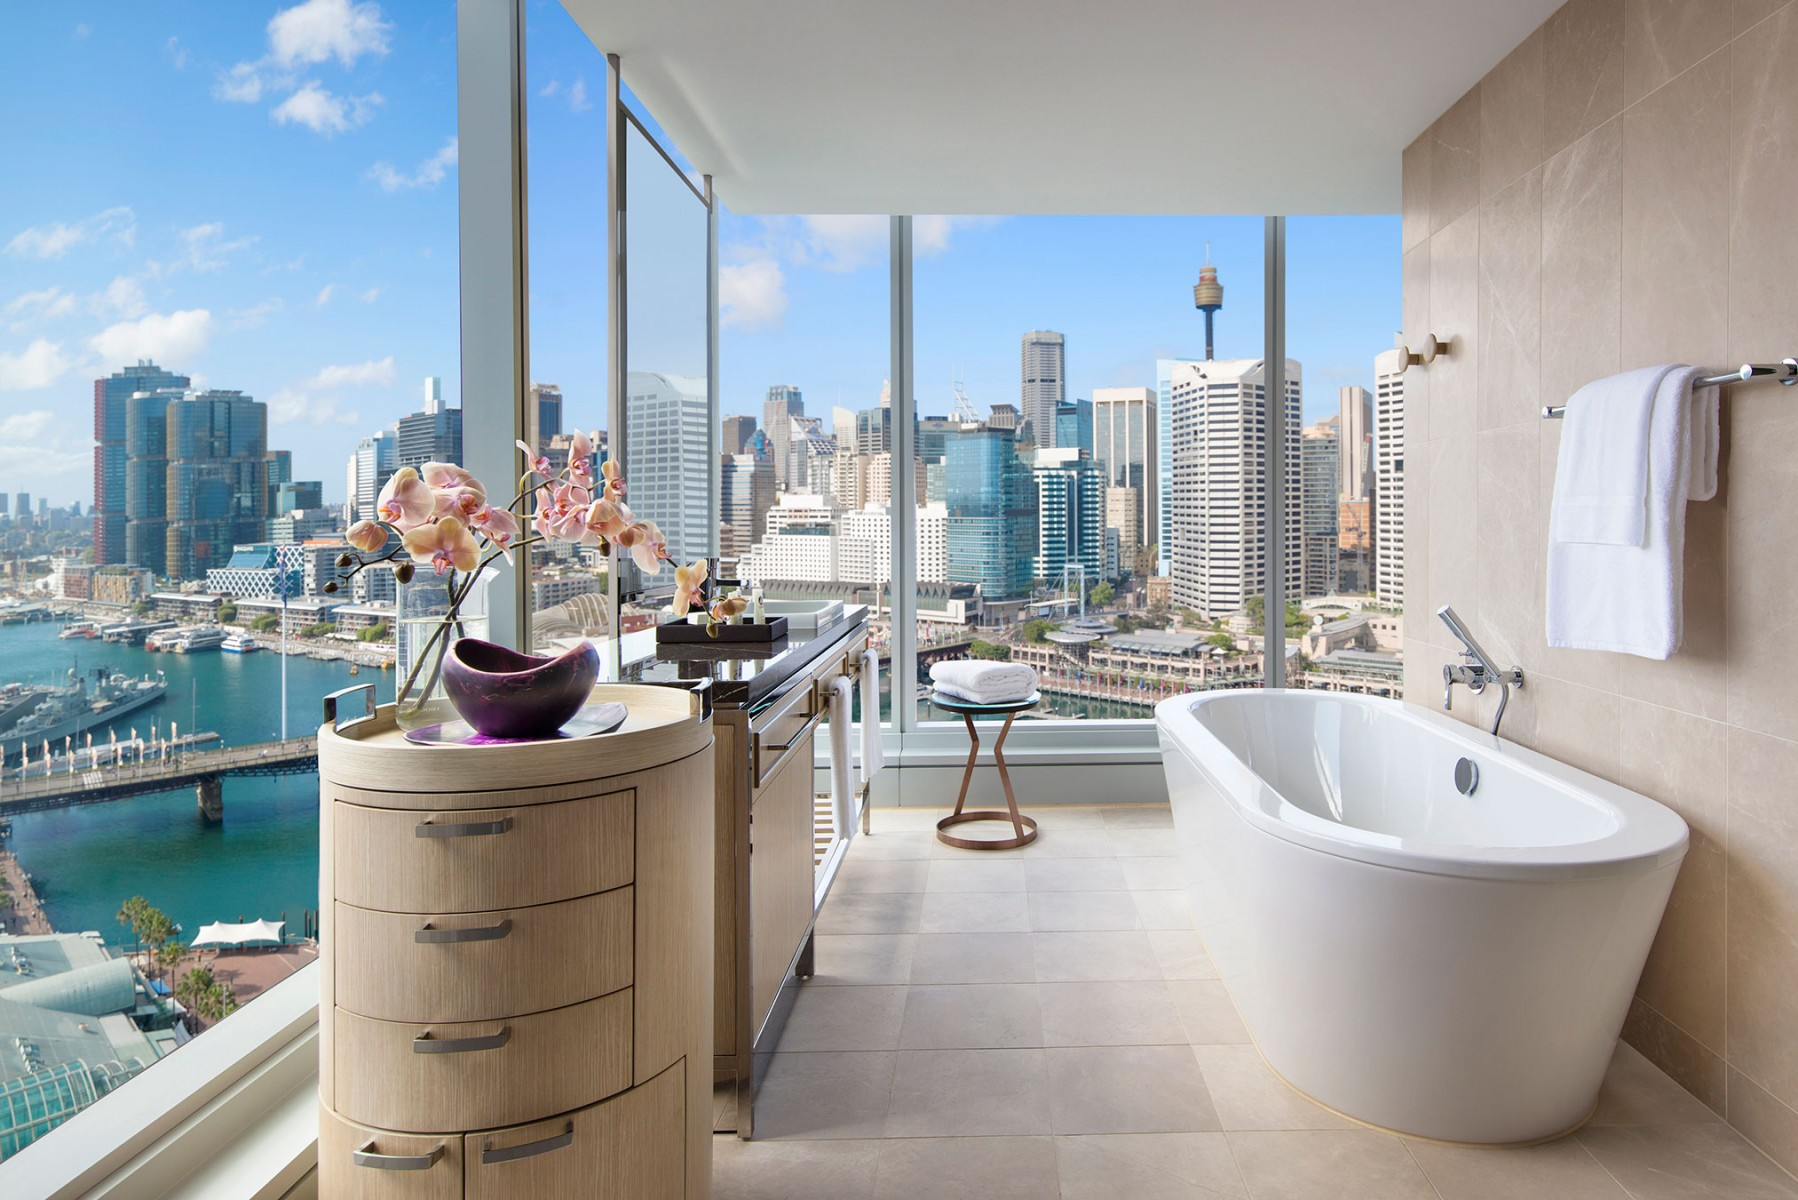 Sofitel Sydney Darling Harbour 4